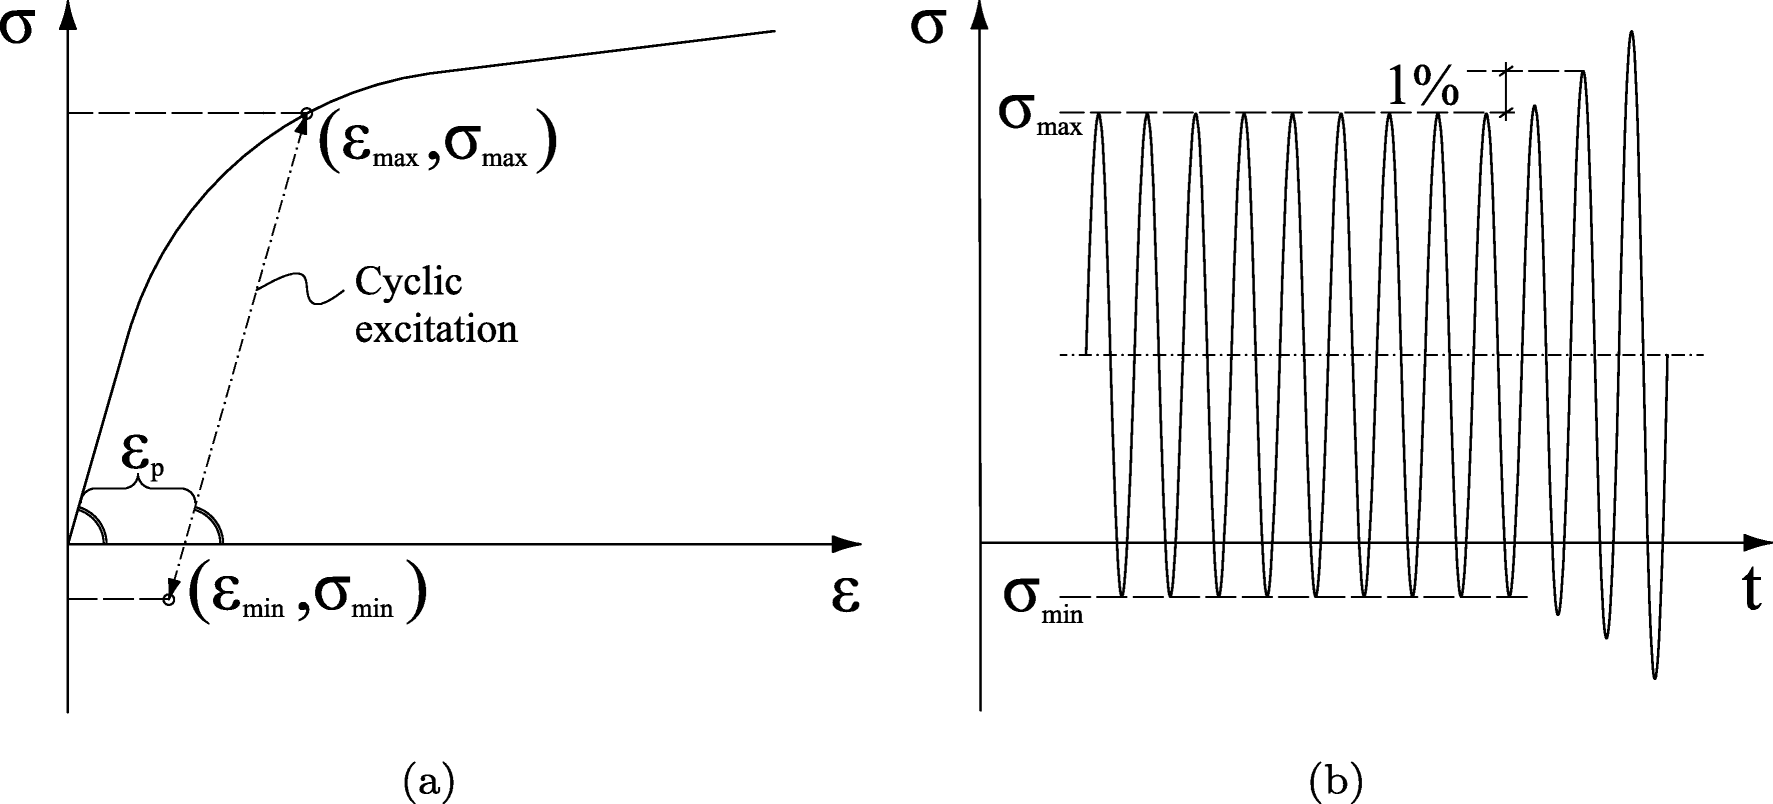 An Improved Sub Component Fatigue Testing Method For Material Shearing Force And Bending Moment Diagram Car Tuning Open Image In New Window